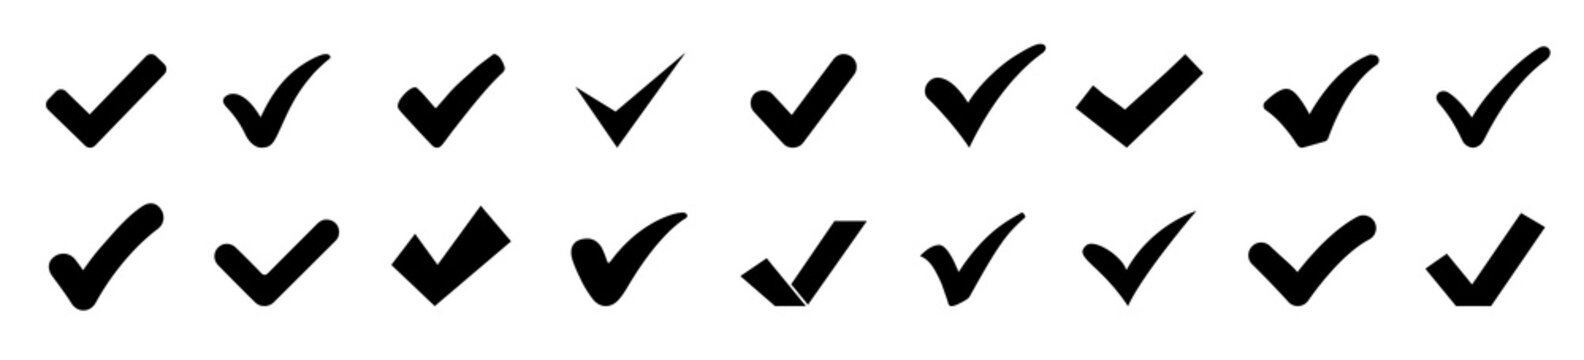 Approval check mark icons set isolated, checklist symbols collection, set quality sign, check marks tick – stock vector